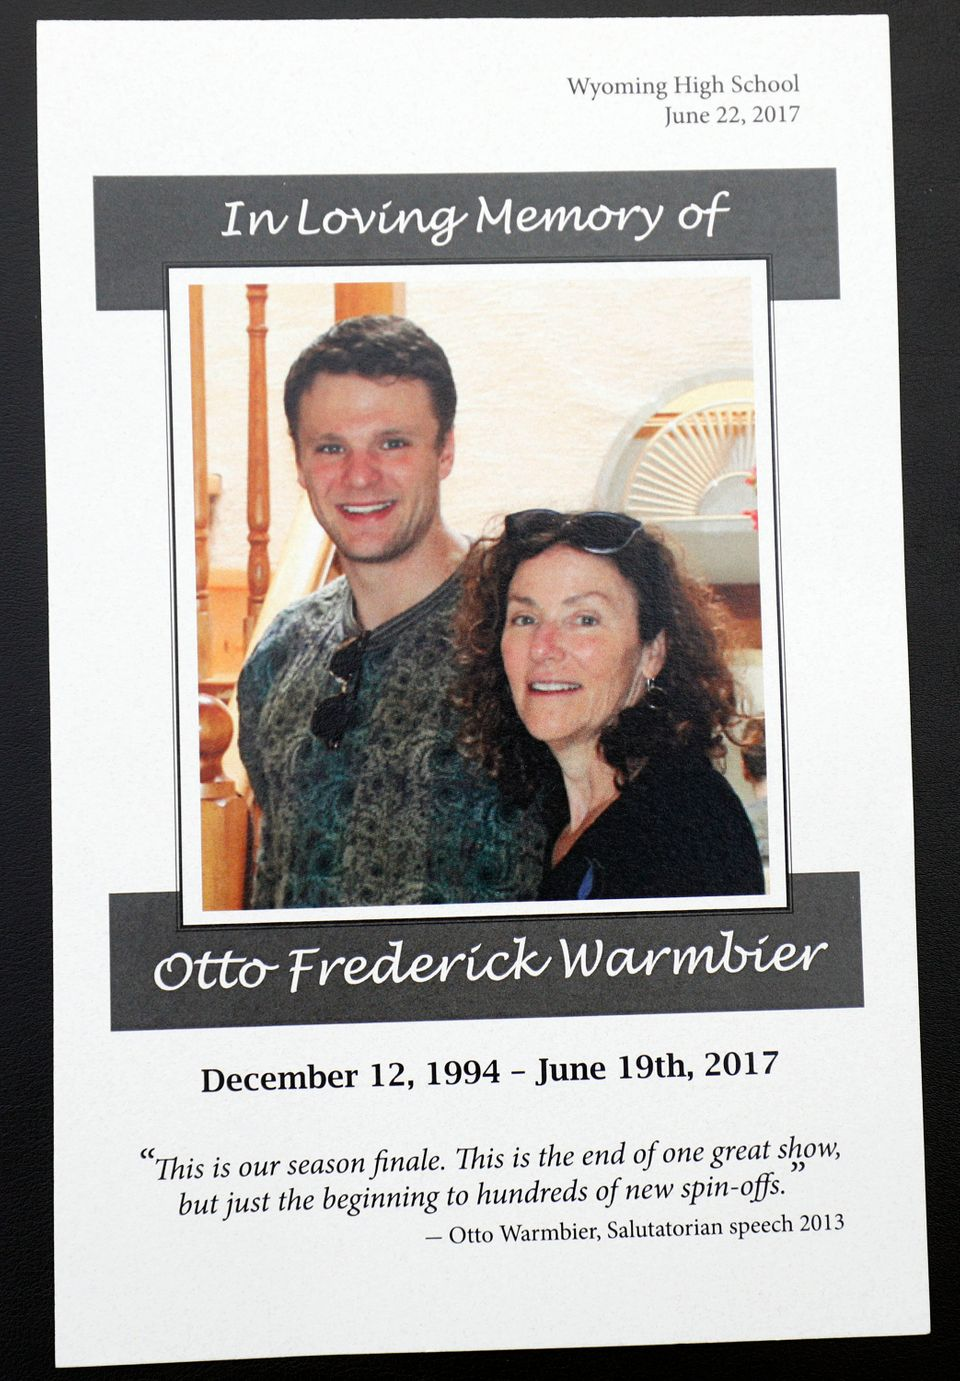 The memorial program for the funeral of Otto Warmbier that was held Thursday in his hometown of Wyoming, Ohio.